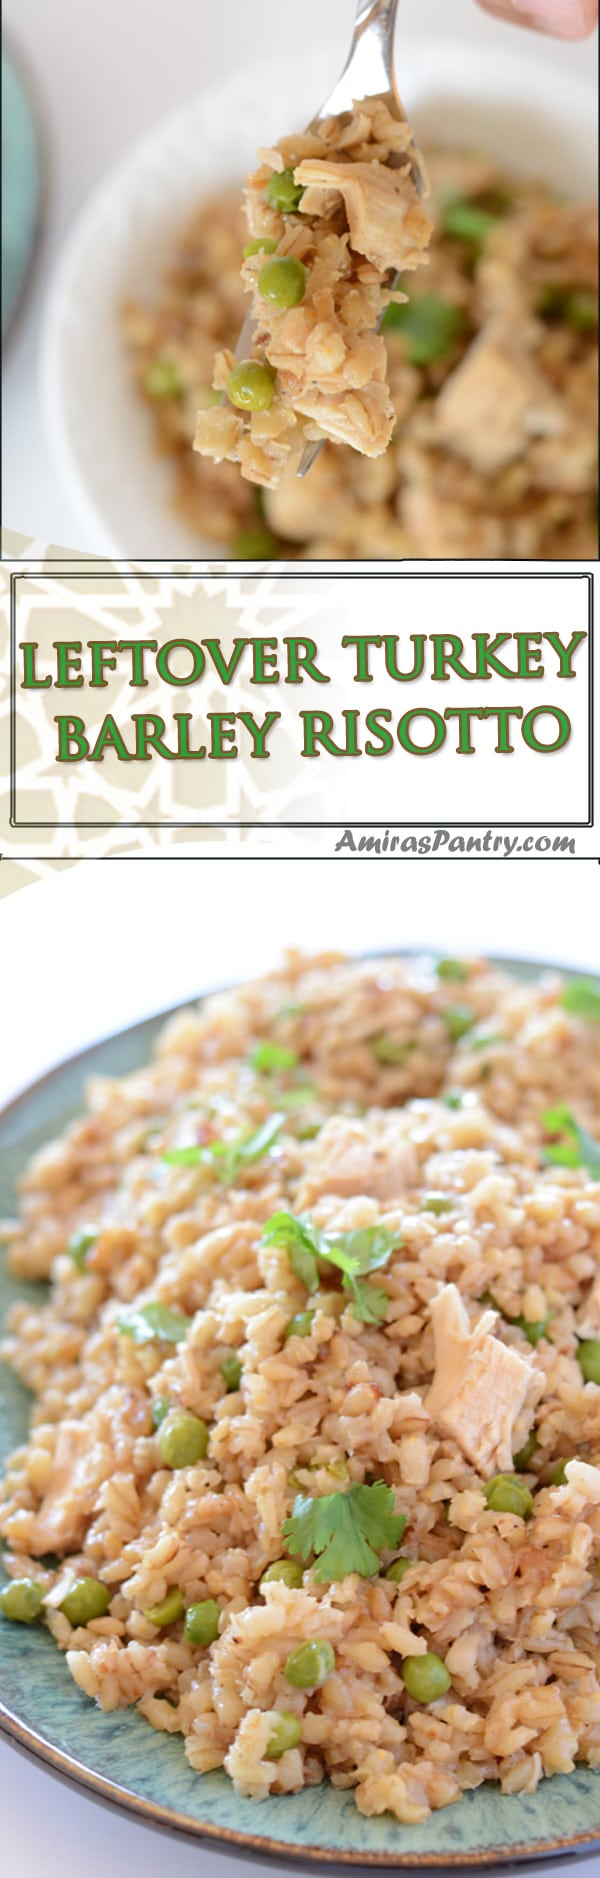 Pearl barley cooked with leftover turkey in a delicious risotto style. A healthy bowl with Thanksgiving goodness.